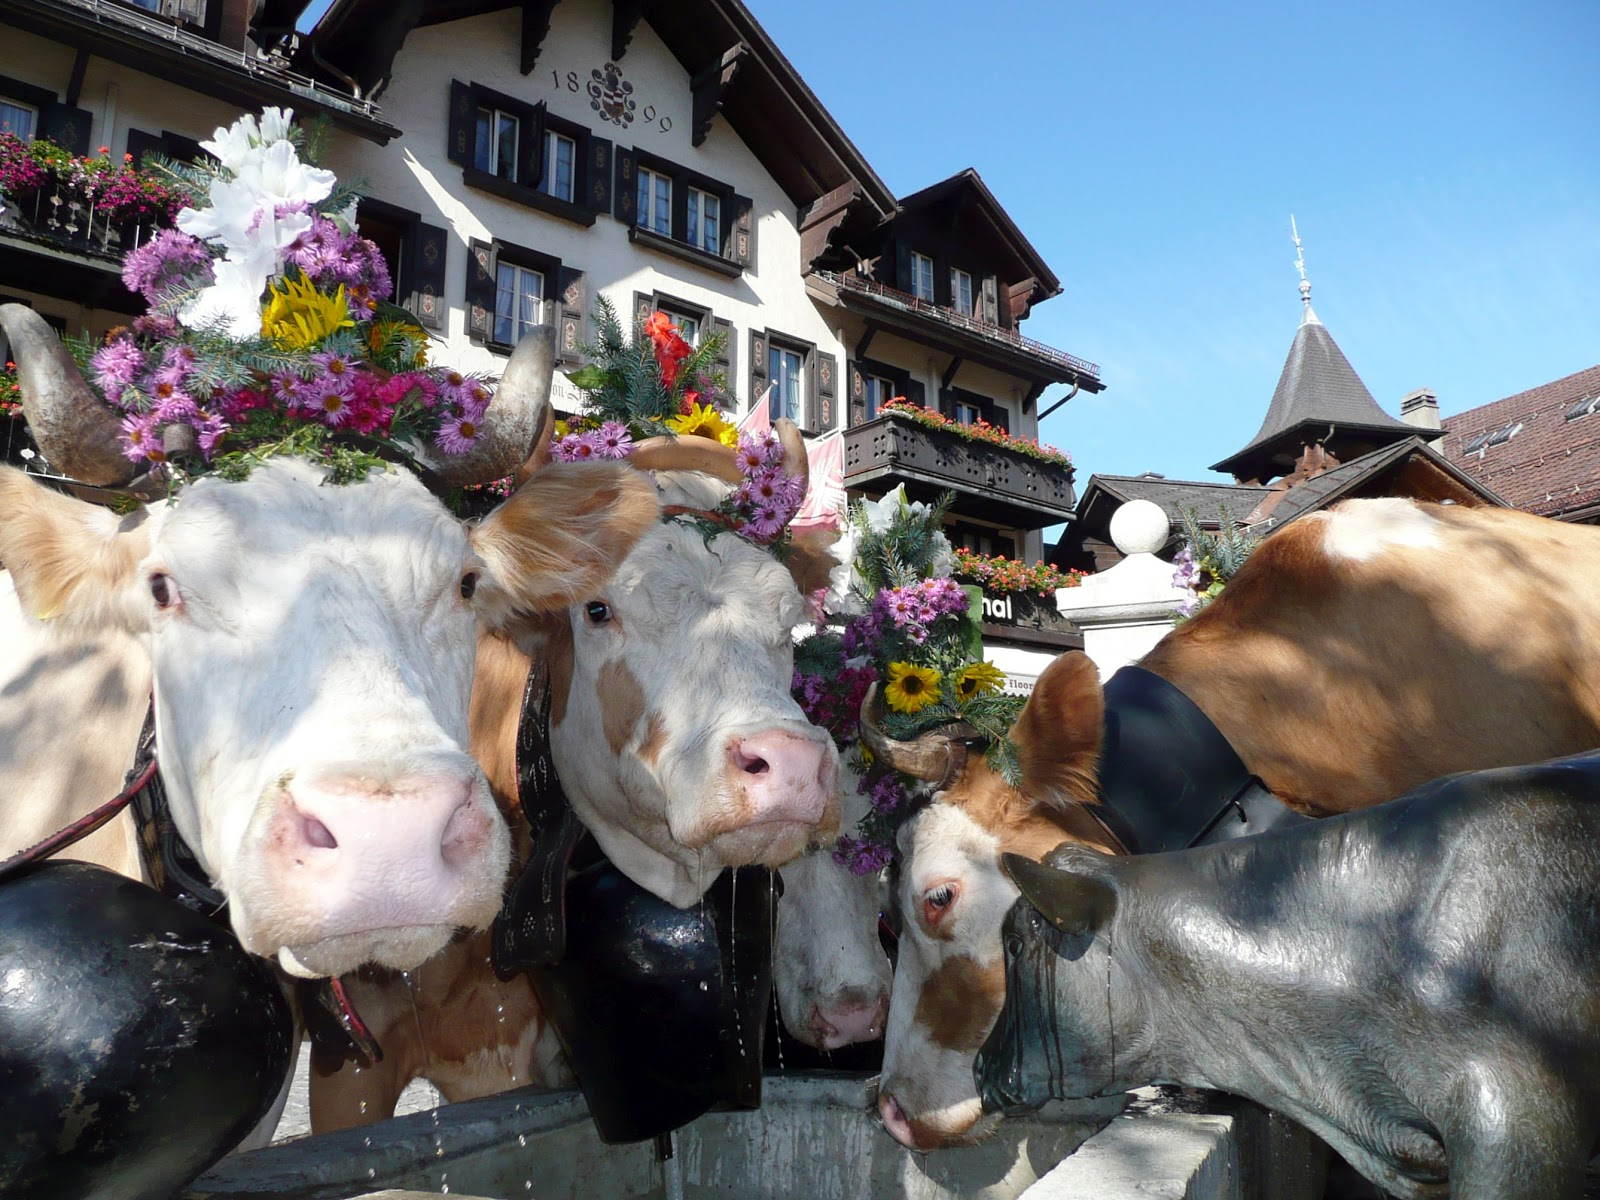 'Suufsunntig' or Drinking Sunday in Gstaad, Switzerland. Photo: Gstaad Saanenland Tourismus.